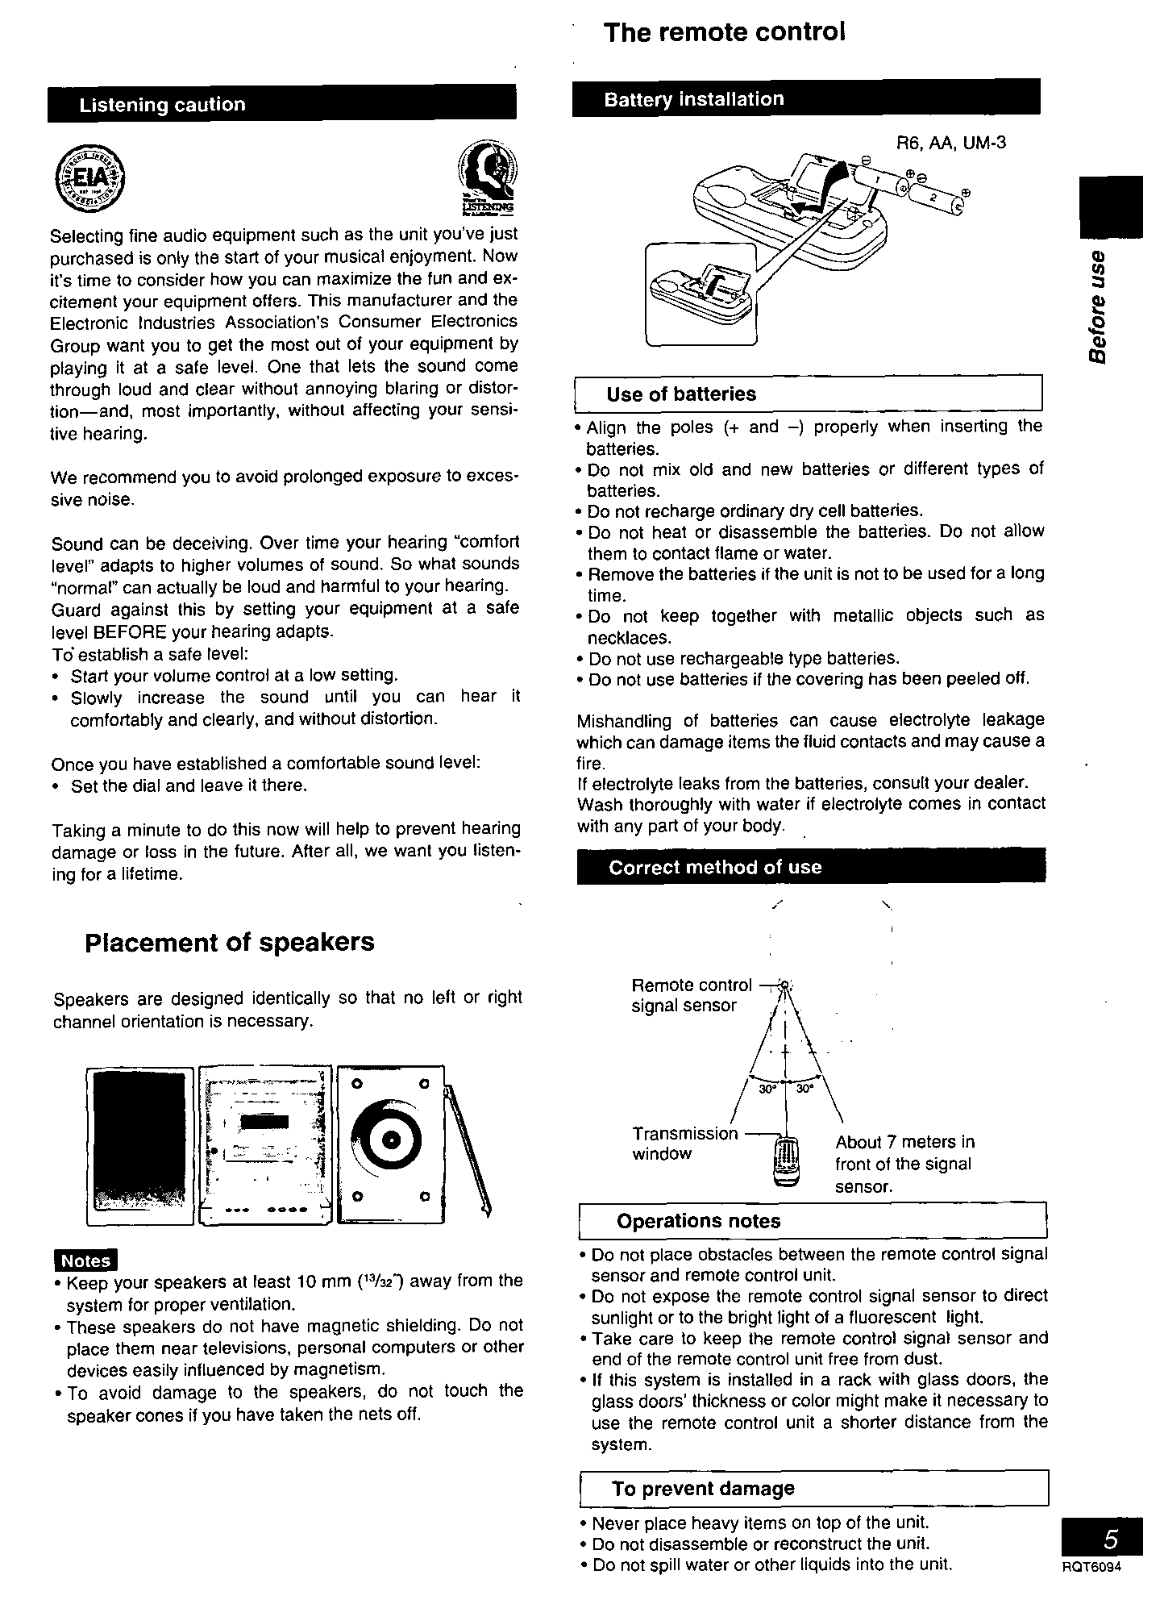 Panasonic SA-PM07, SC-PM07 User Manual